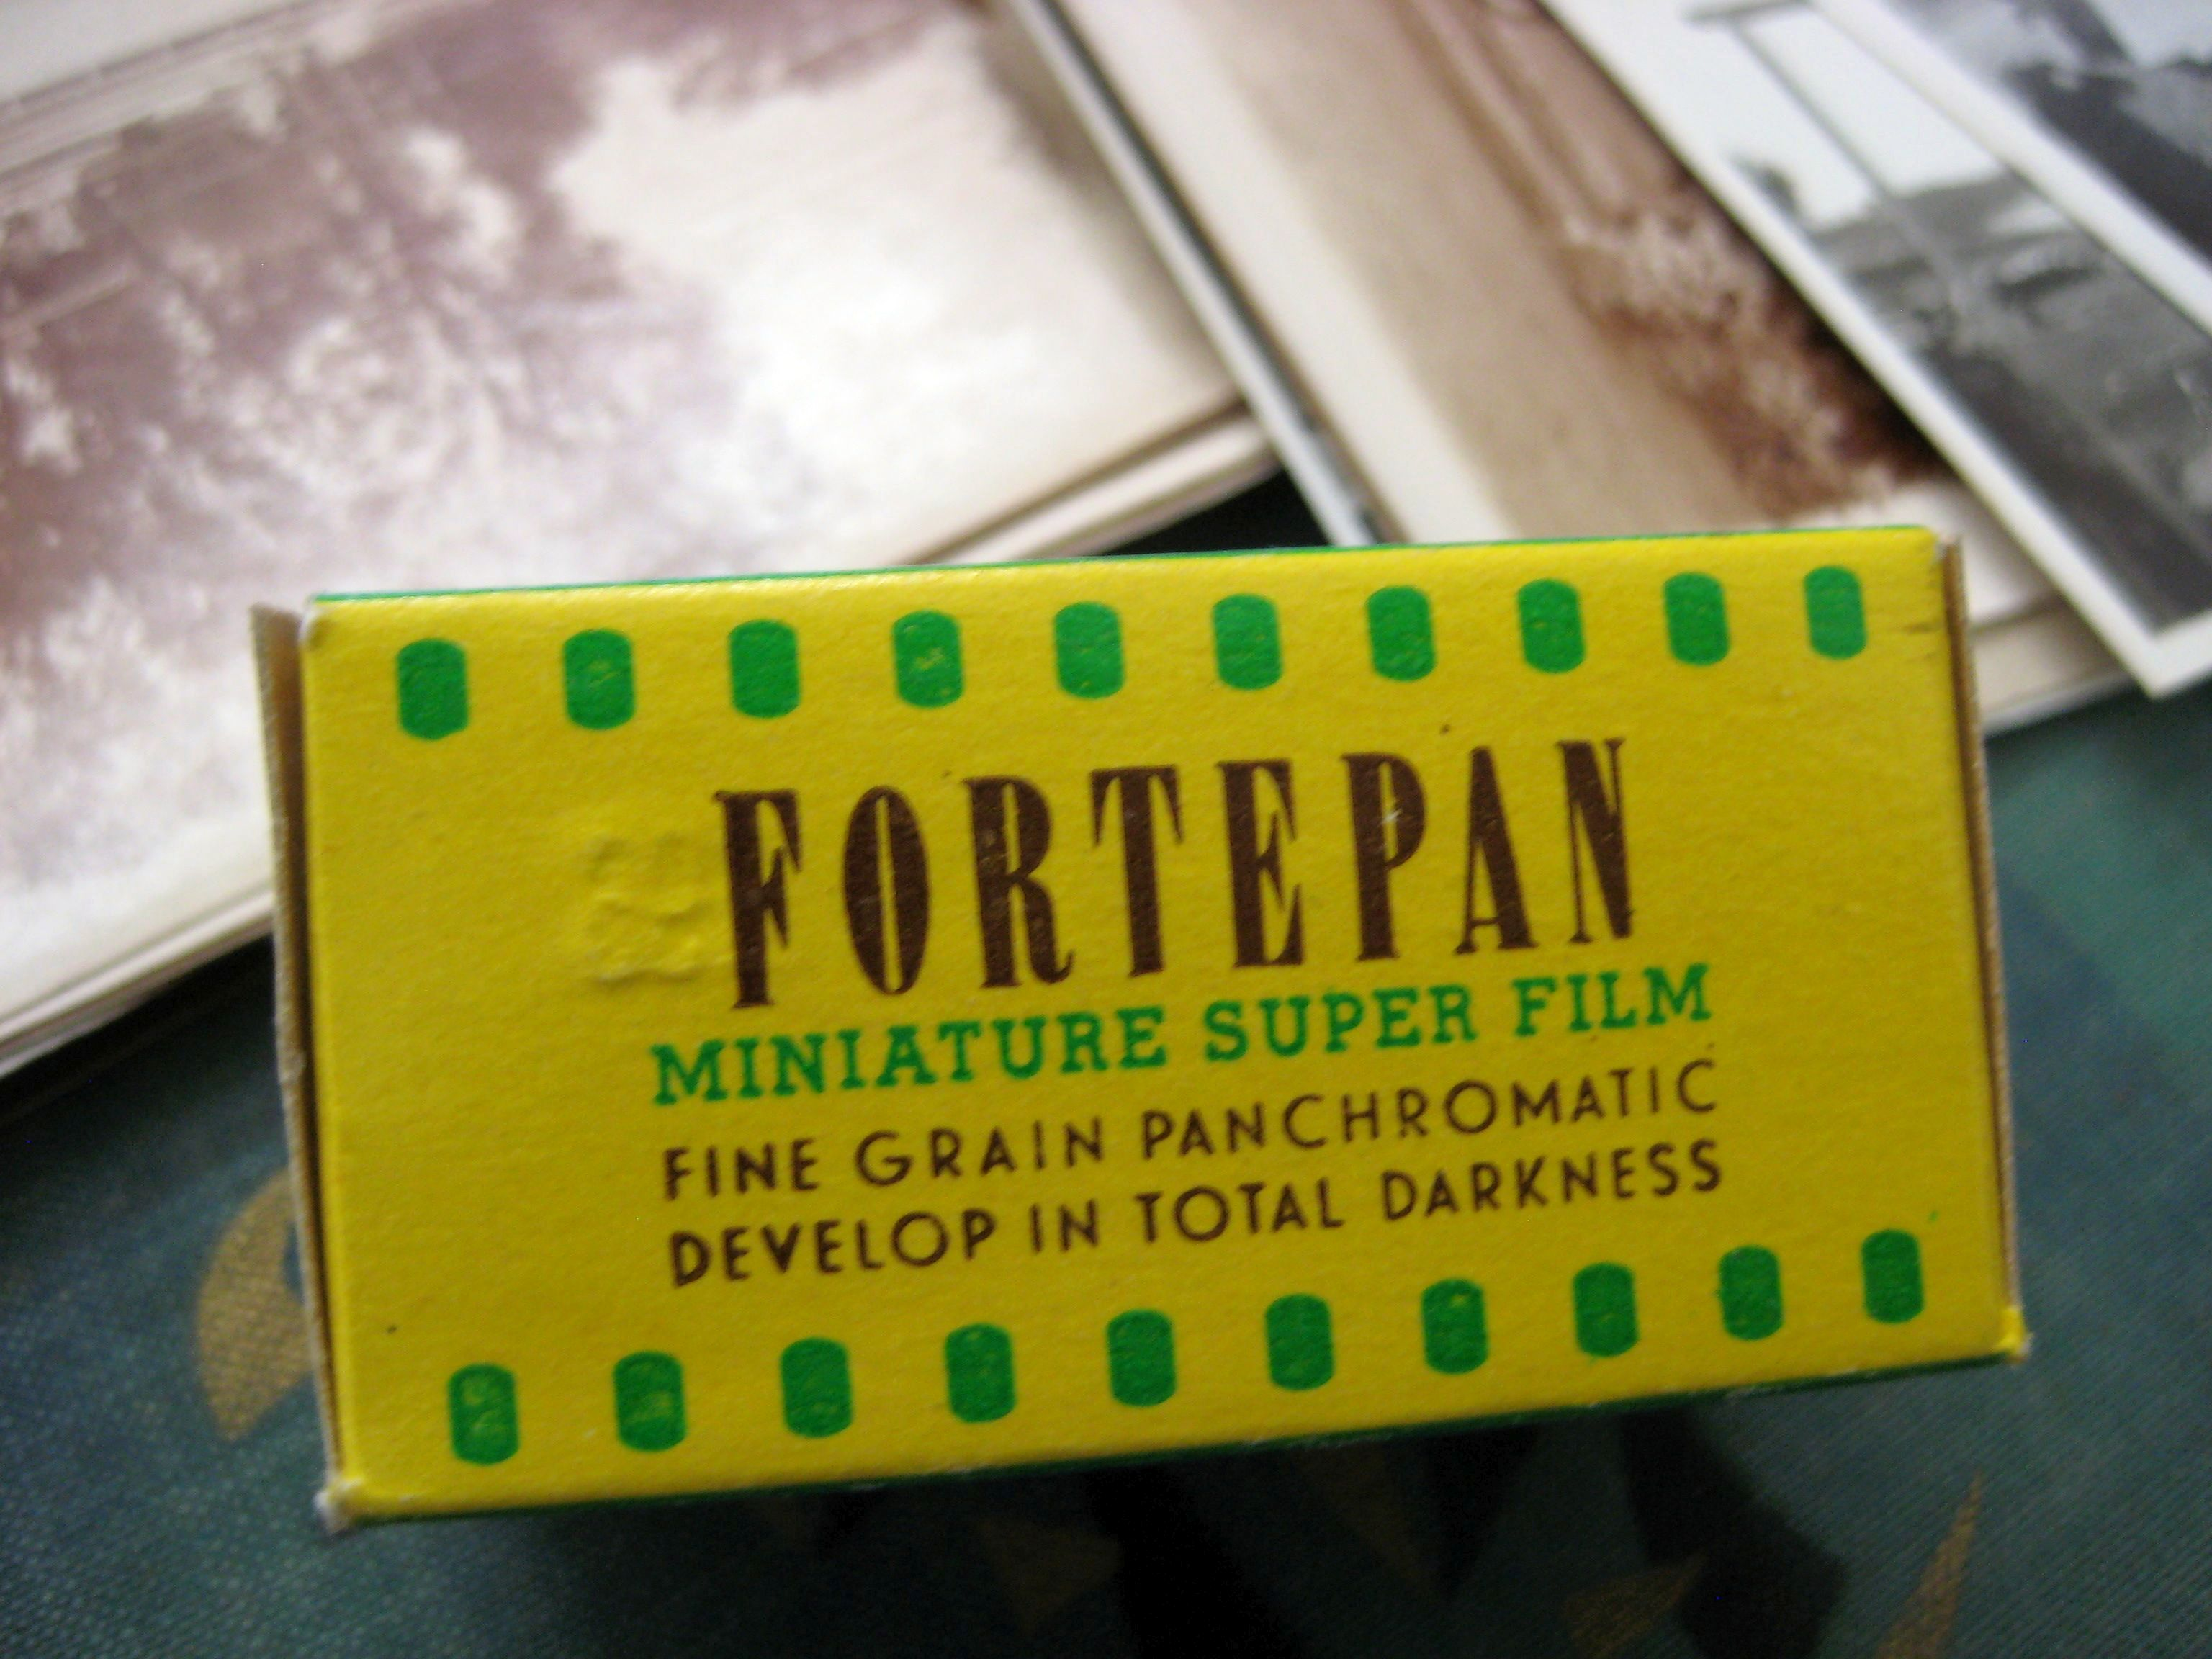 Fortepan film by Forte that the collection was named after. Photo: Tamás Scheibner